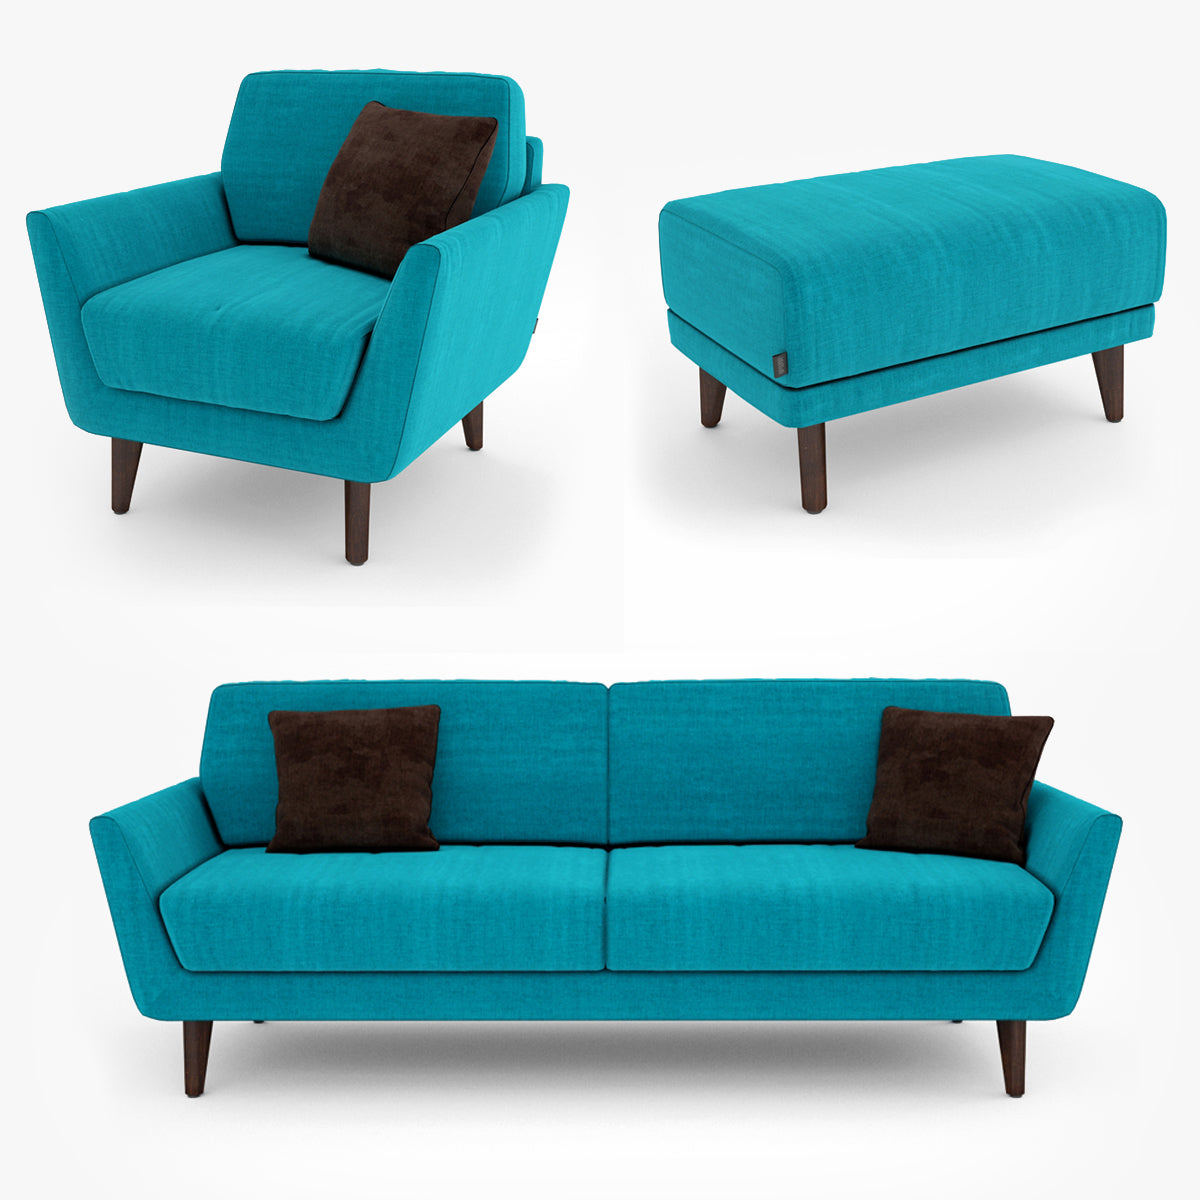 Sits Rucola Sofa Collection 3D Model